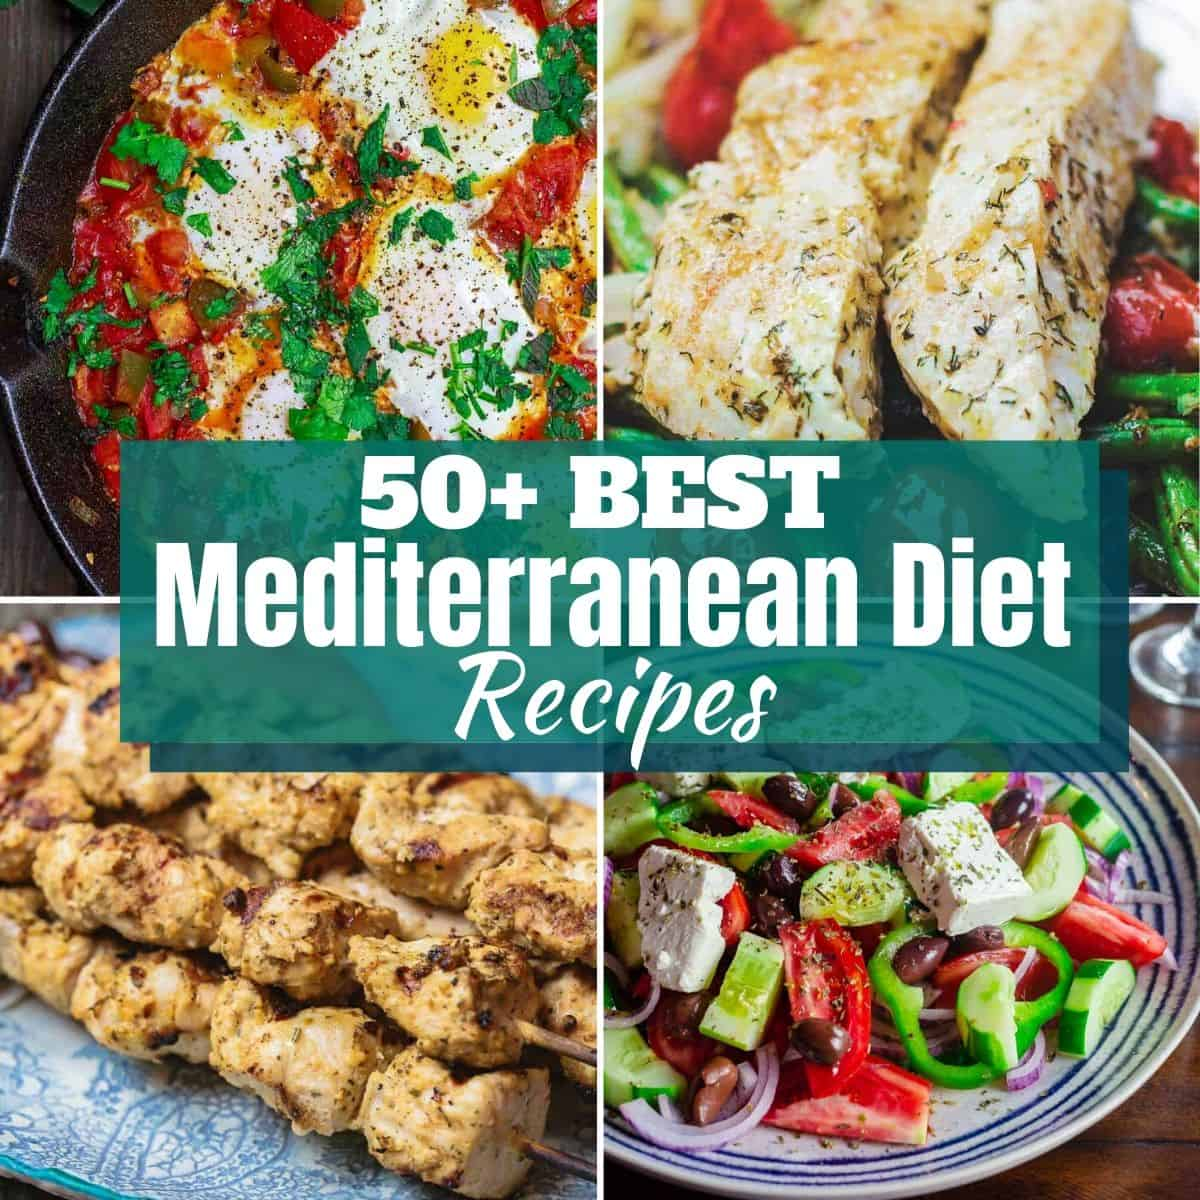 50+ Mediterranean diet recipes you'll love!